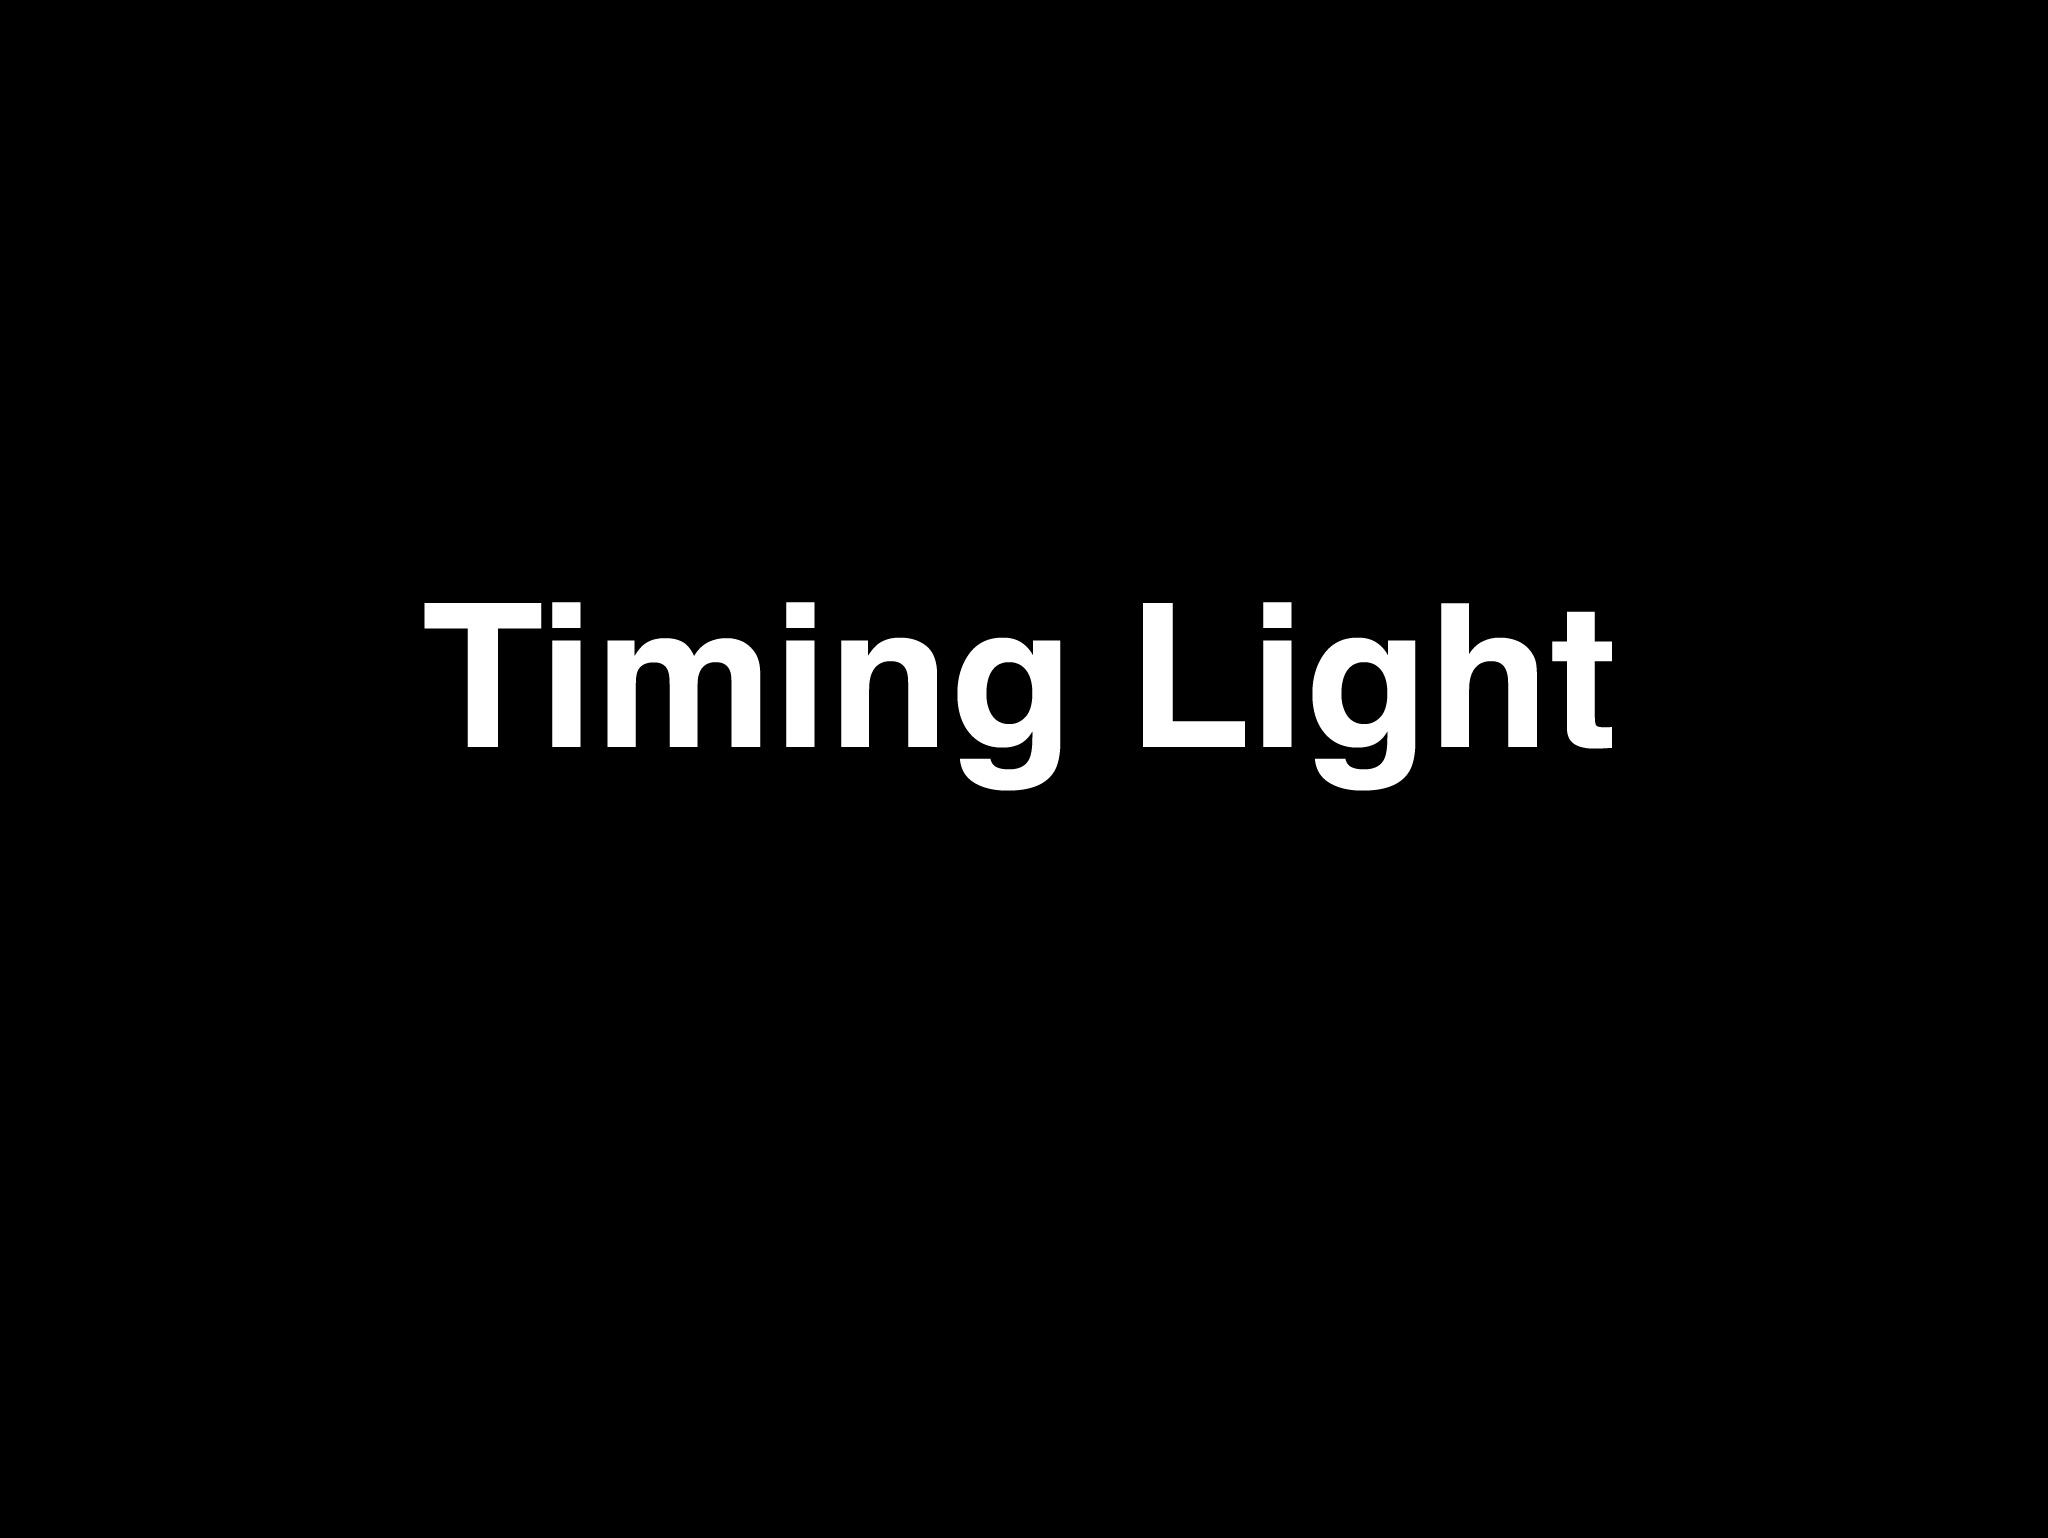 Timing Light Videos and Slides for Toastmaster Speeches